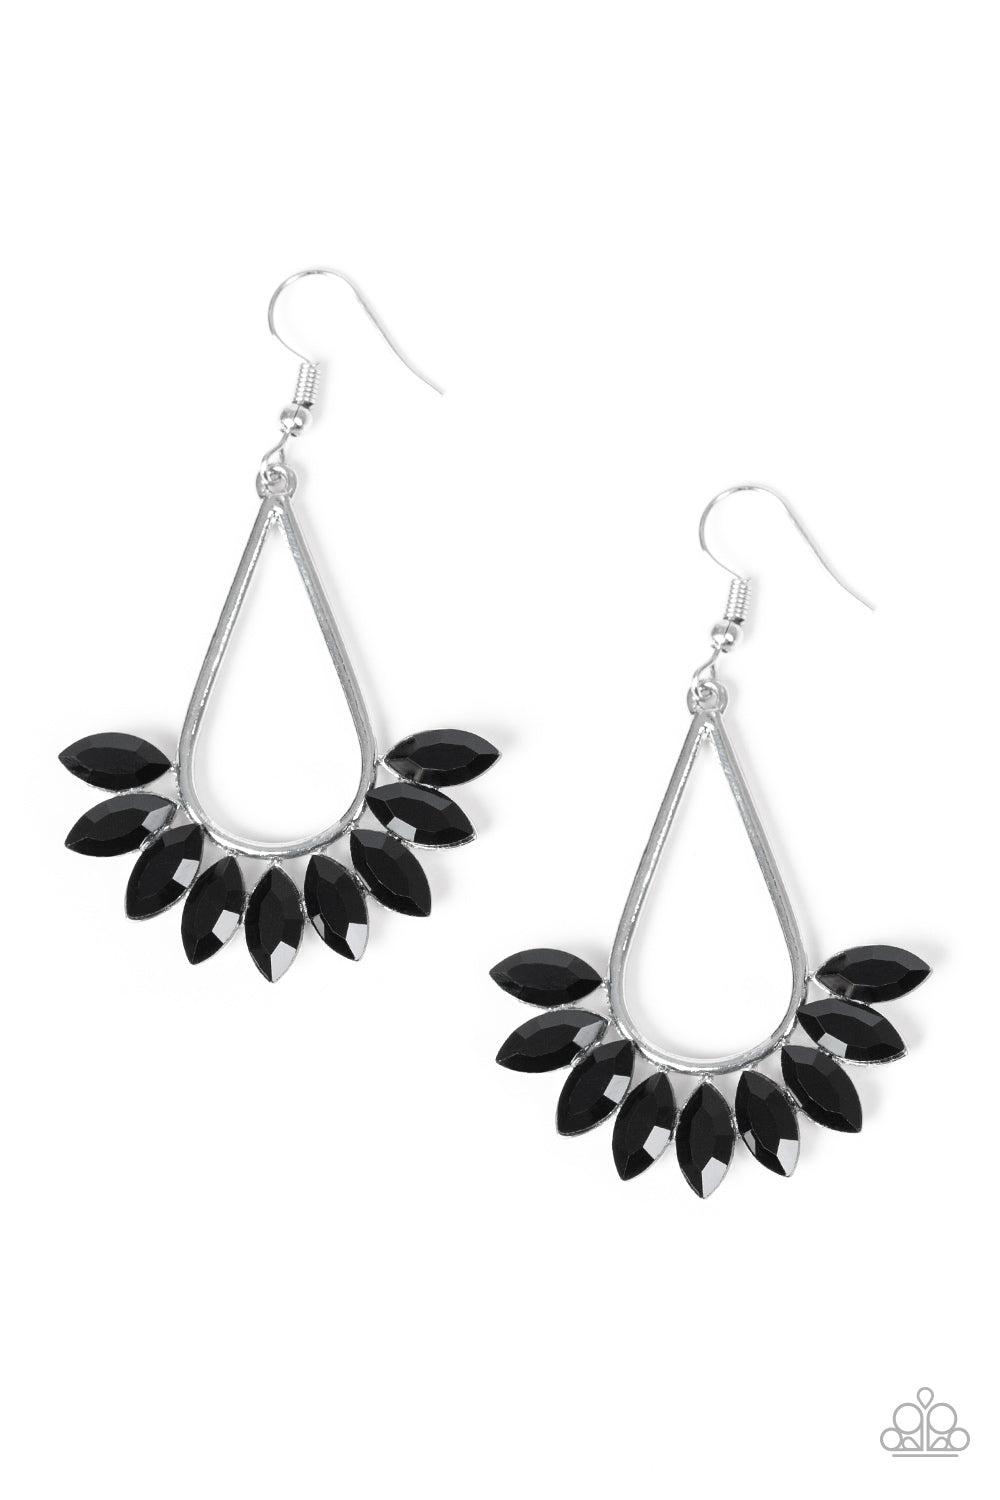 Paparazzi Accessories - Be On Guard - Black Earring - JMJ Jewelry Collection